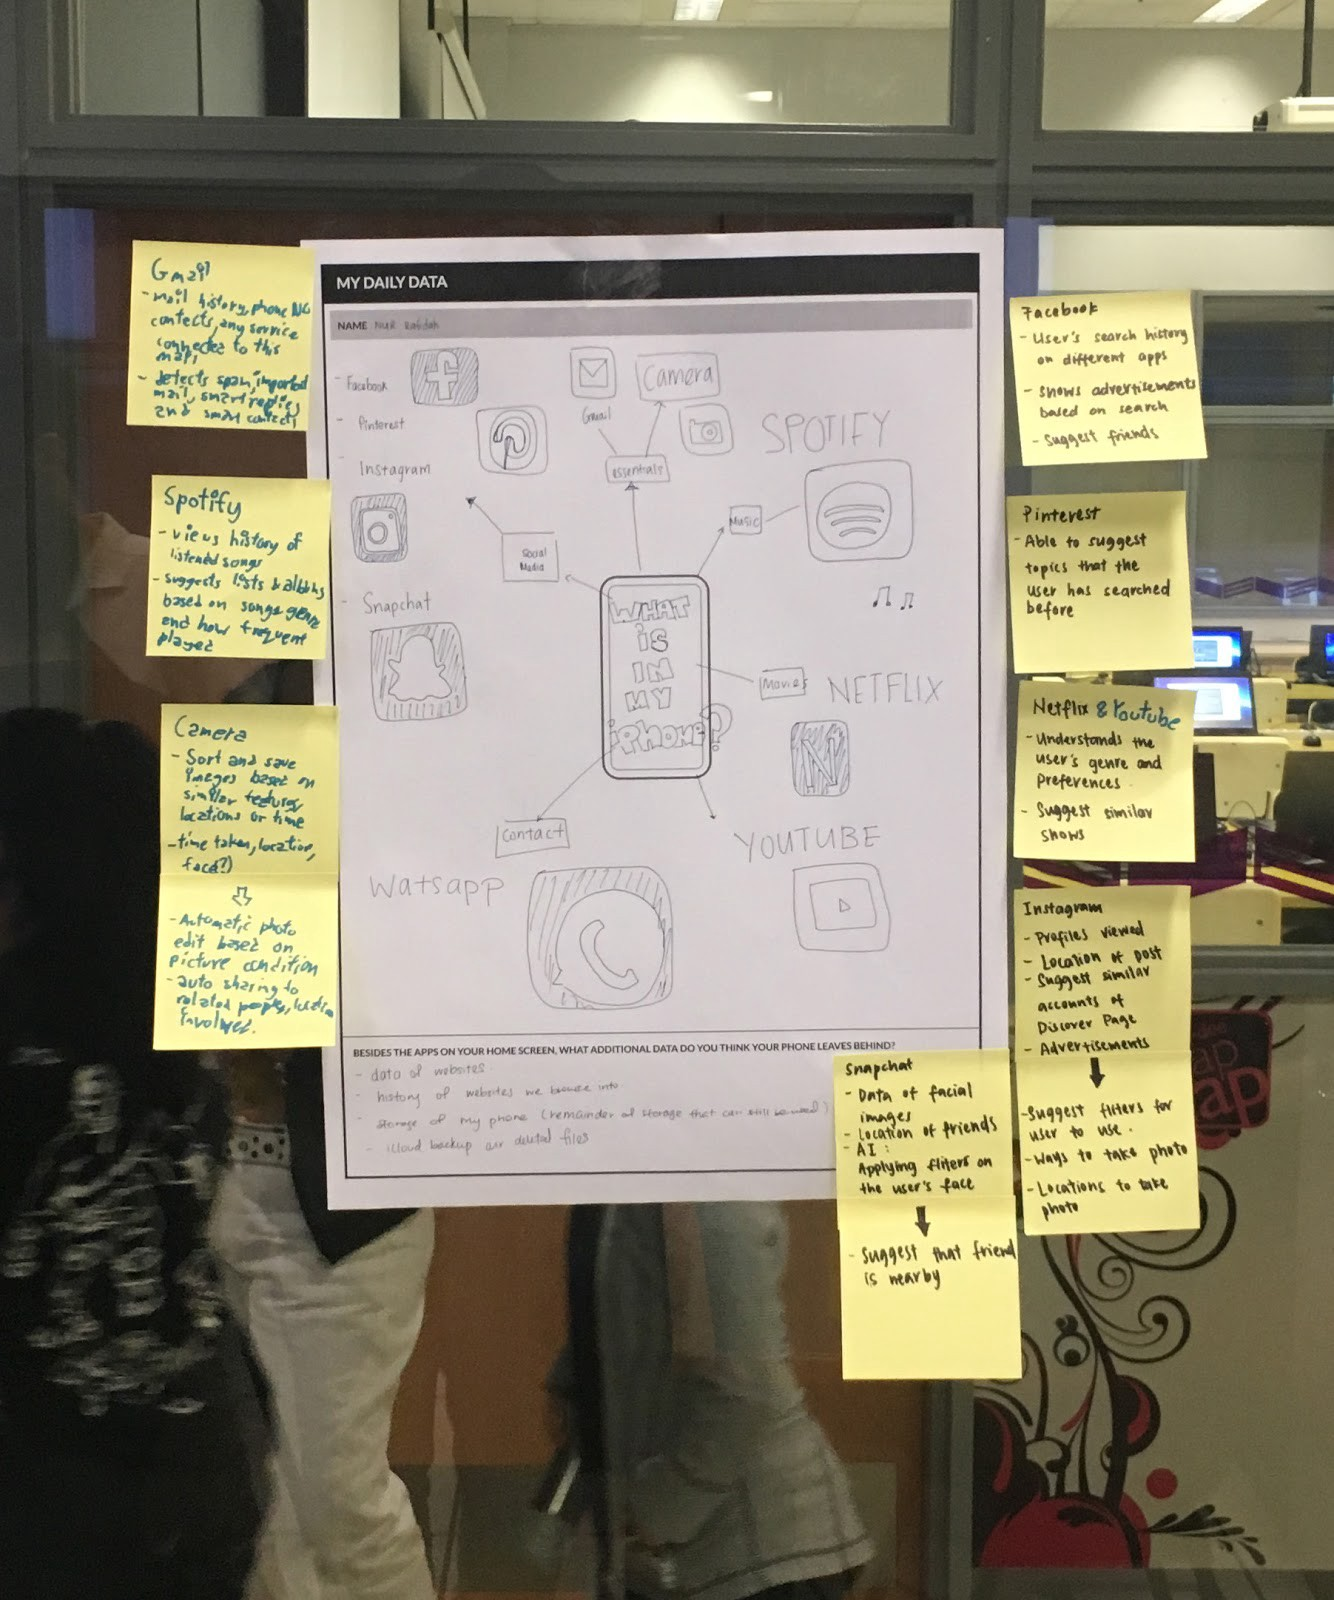 Drawings of a person's daily data on a sheet of paper with post-it notes.